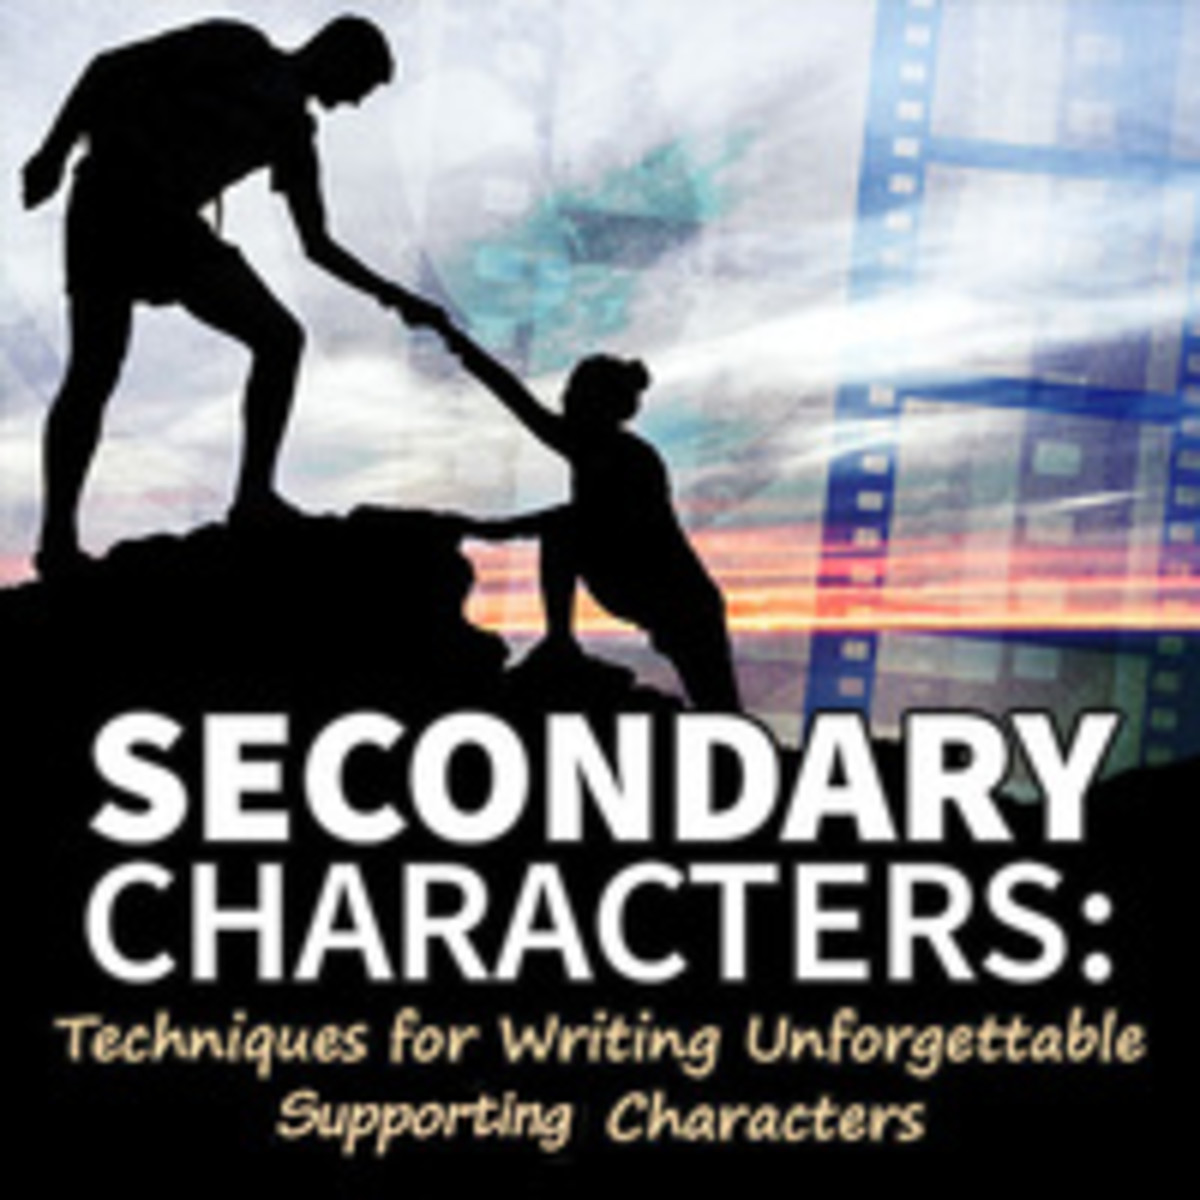 Secondary Characters: Techniques for Writing Unforgettable Supporting Characters